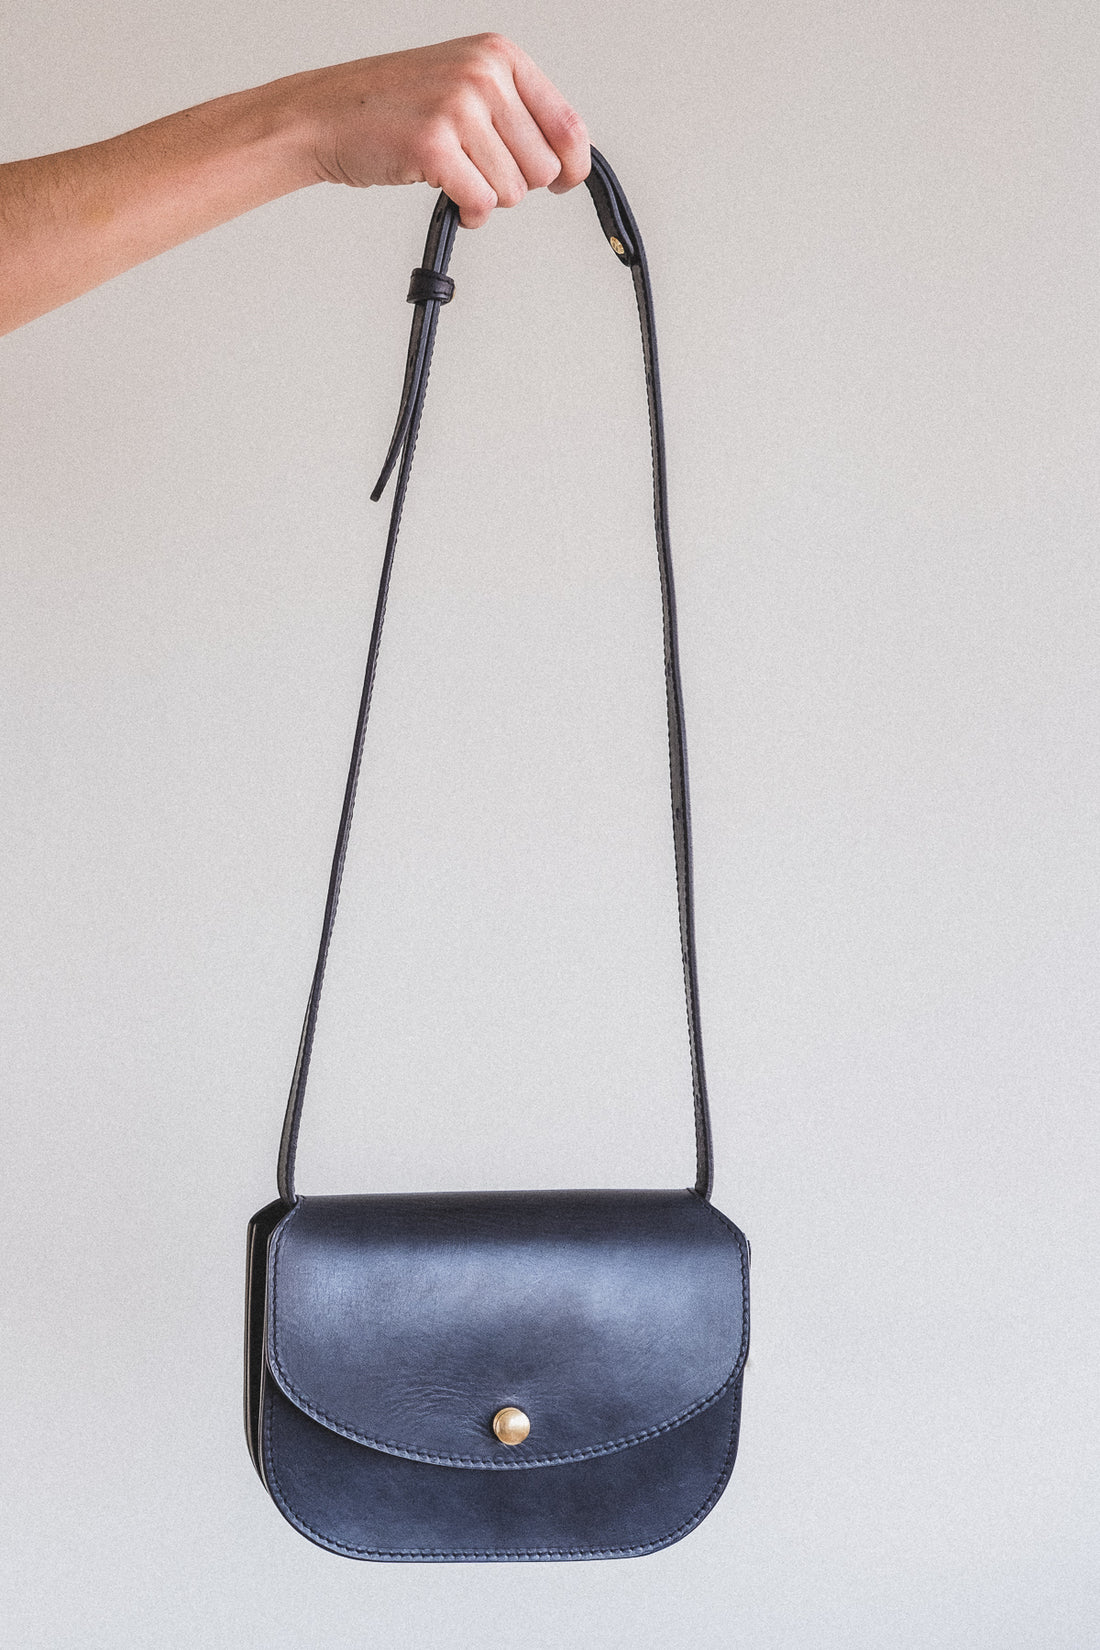 PO CROSSBODY IN BLACK VACHETTA LEATHER